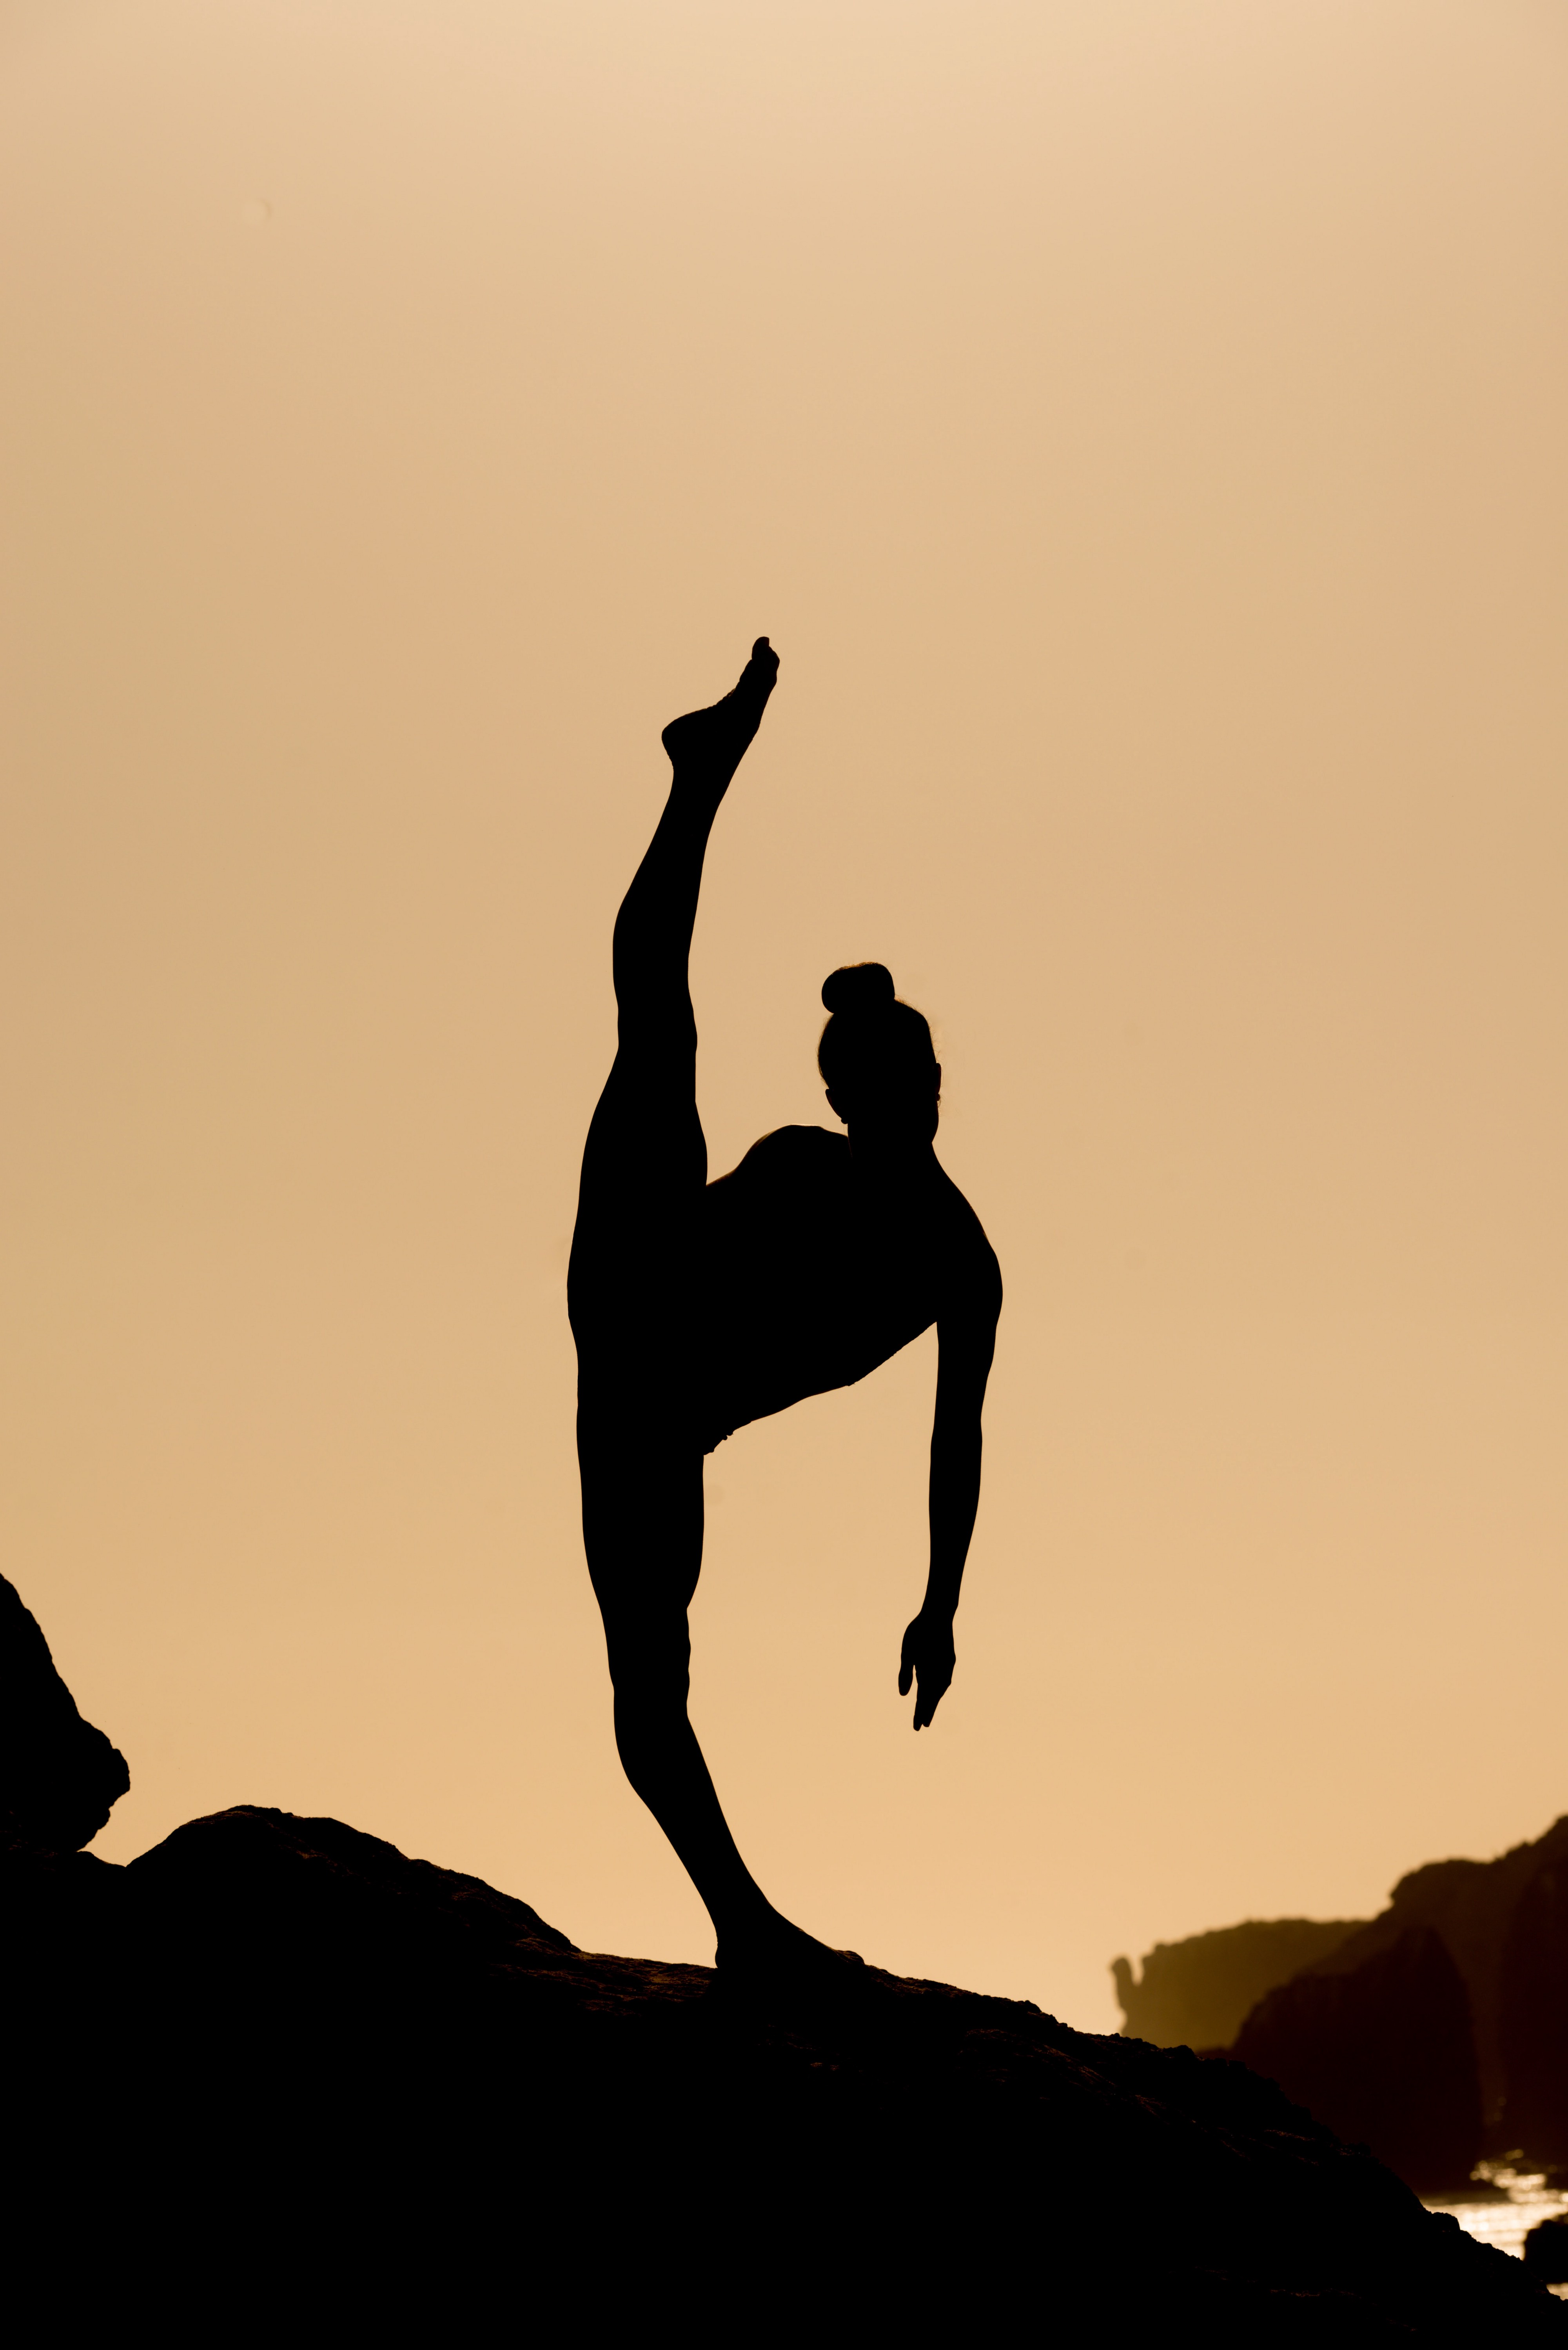 Sillhouette of person in front of amber background doing standing splits with ground leg (left leg) hyperextended.